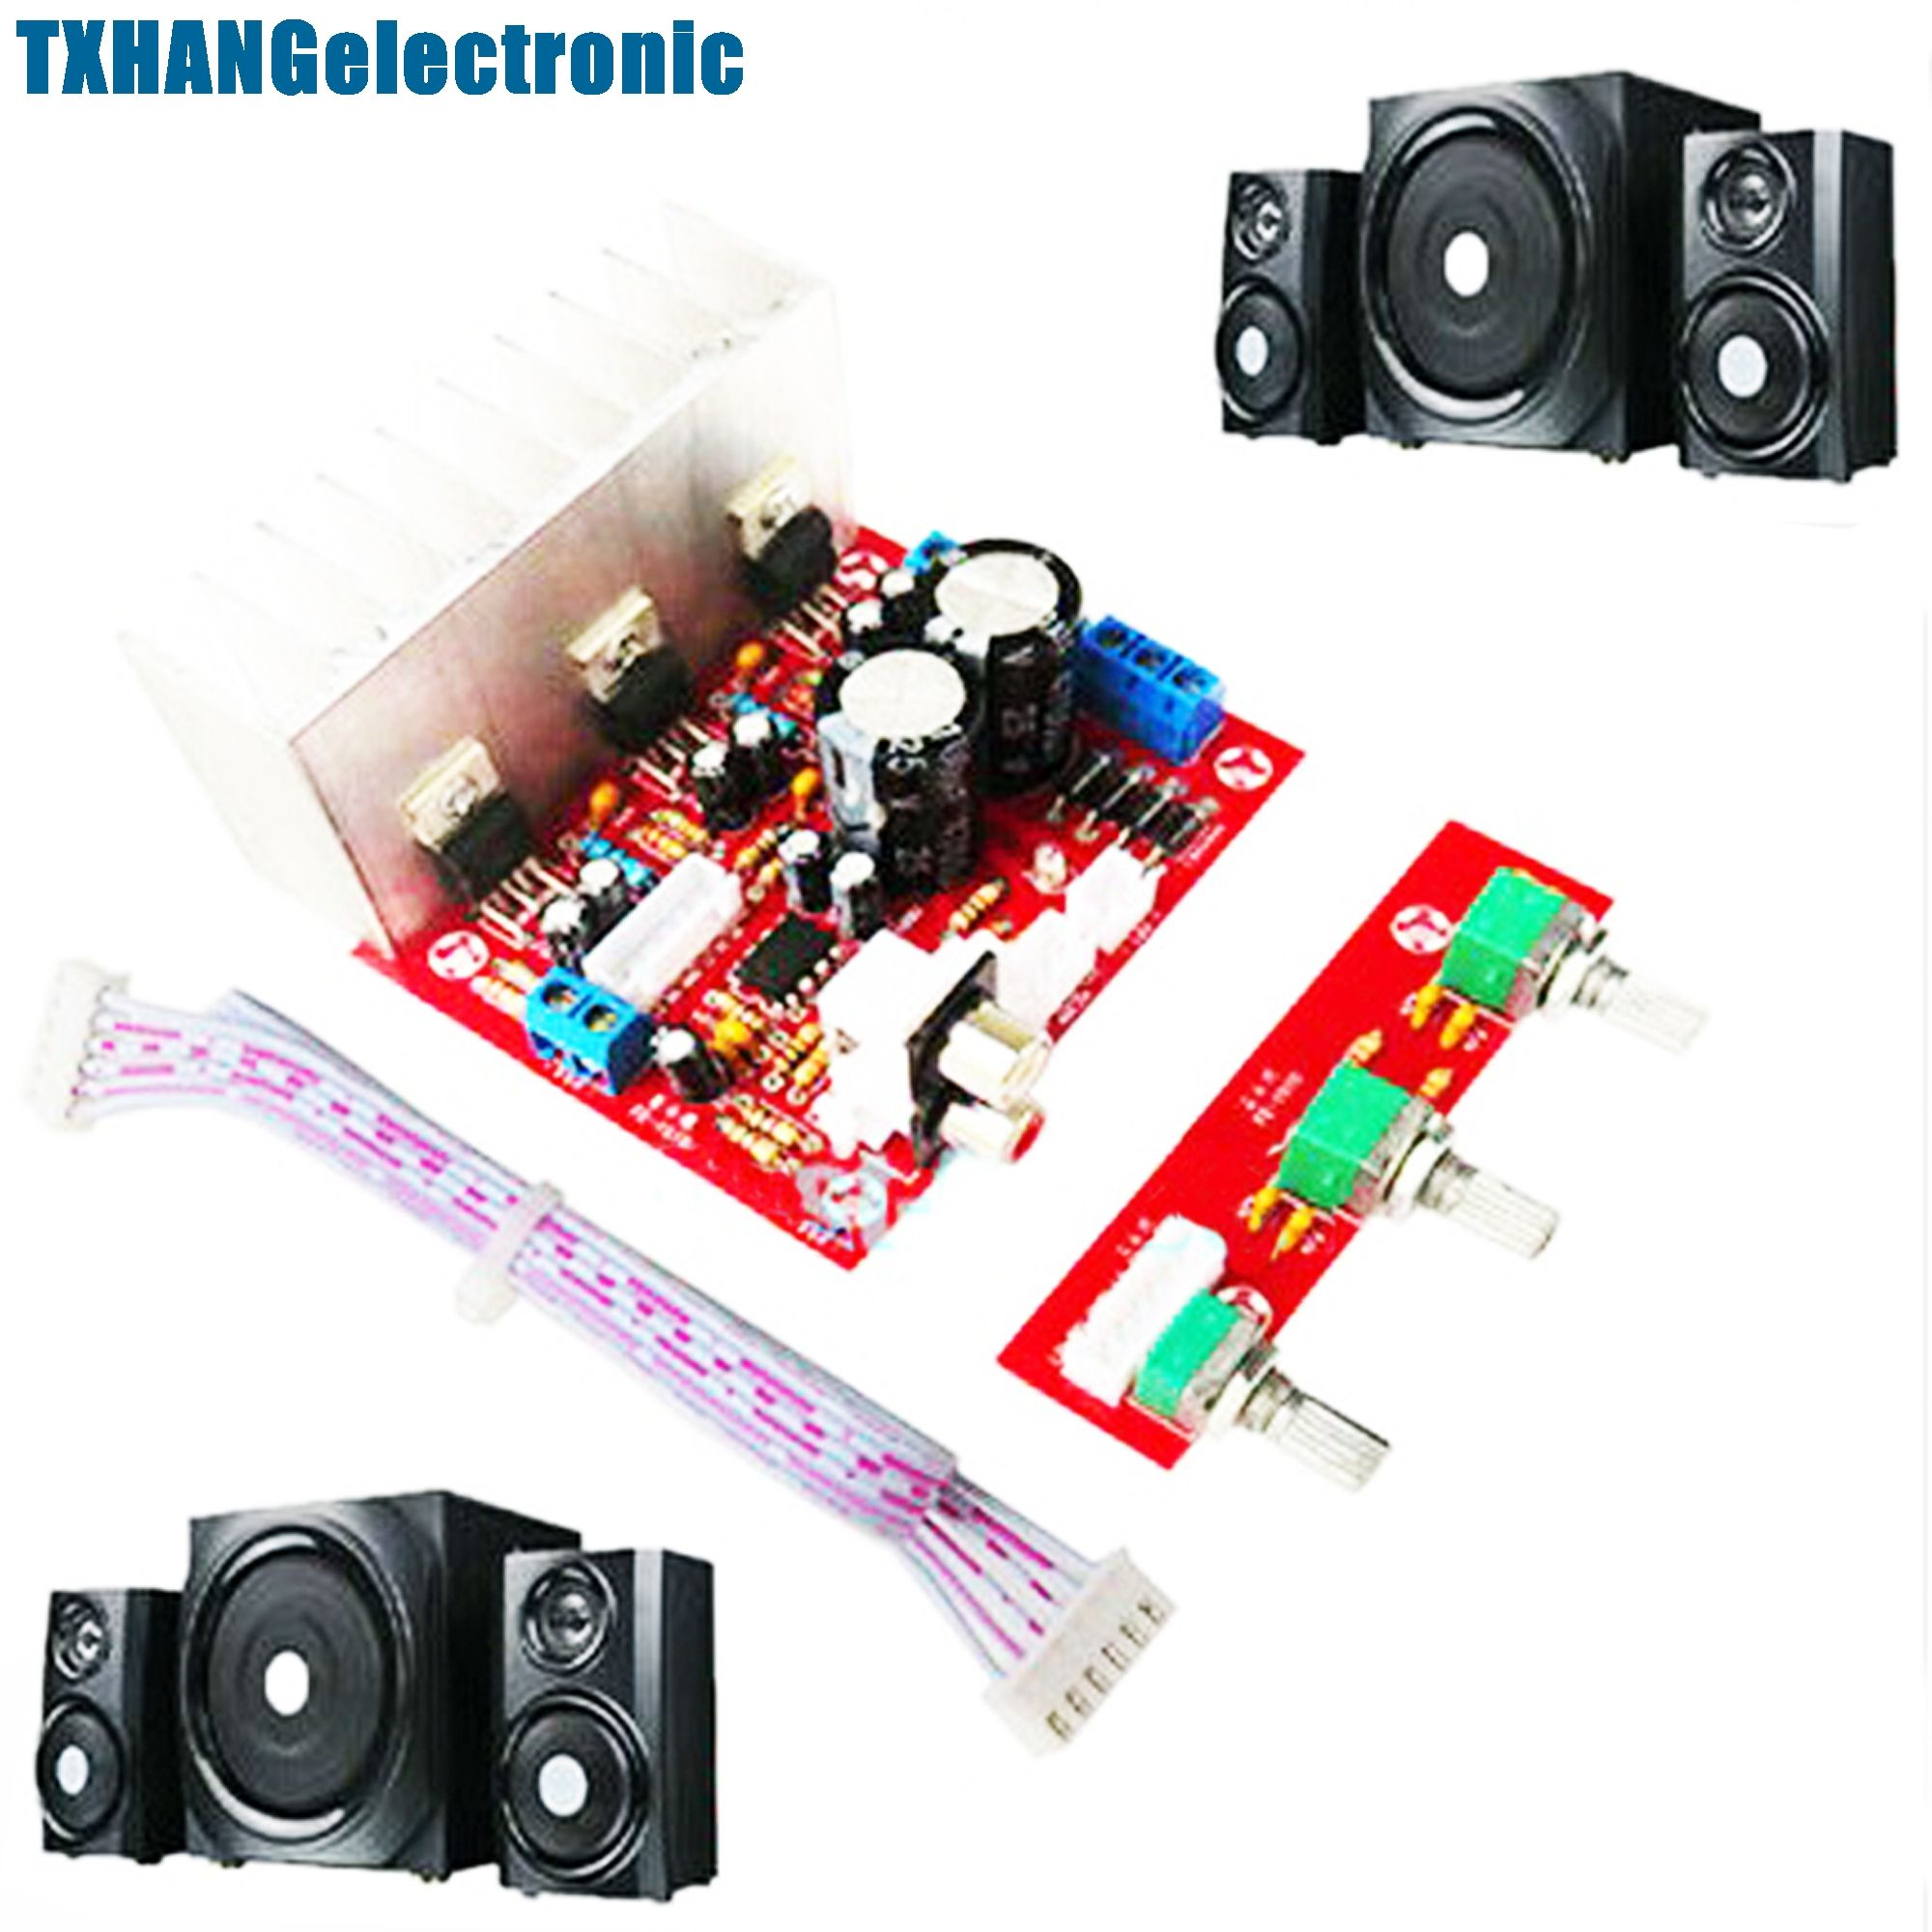 Tda2030a Super Bass 21 Power Amplifier Board 3 Sound Track Pc Easy Hifi Ocl 150w Rms By Transistor Electronic Projects Speaker Circuit